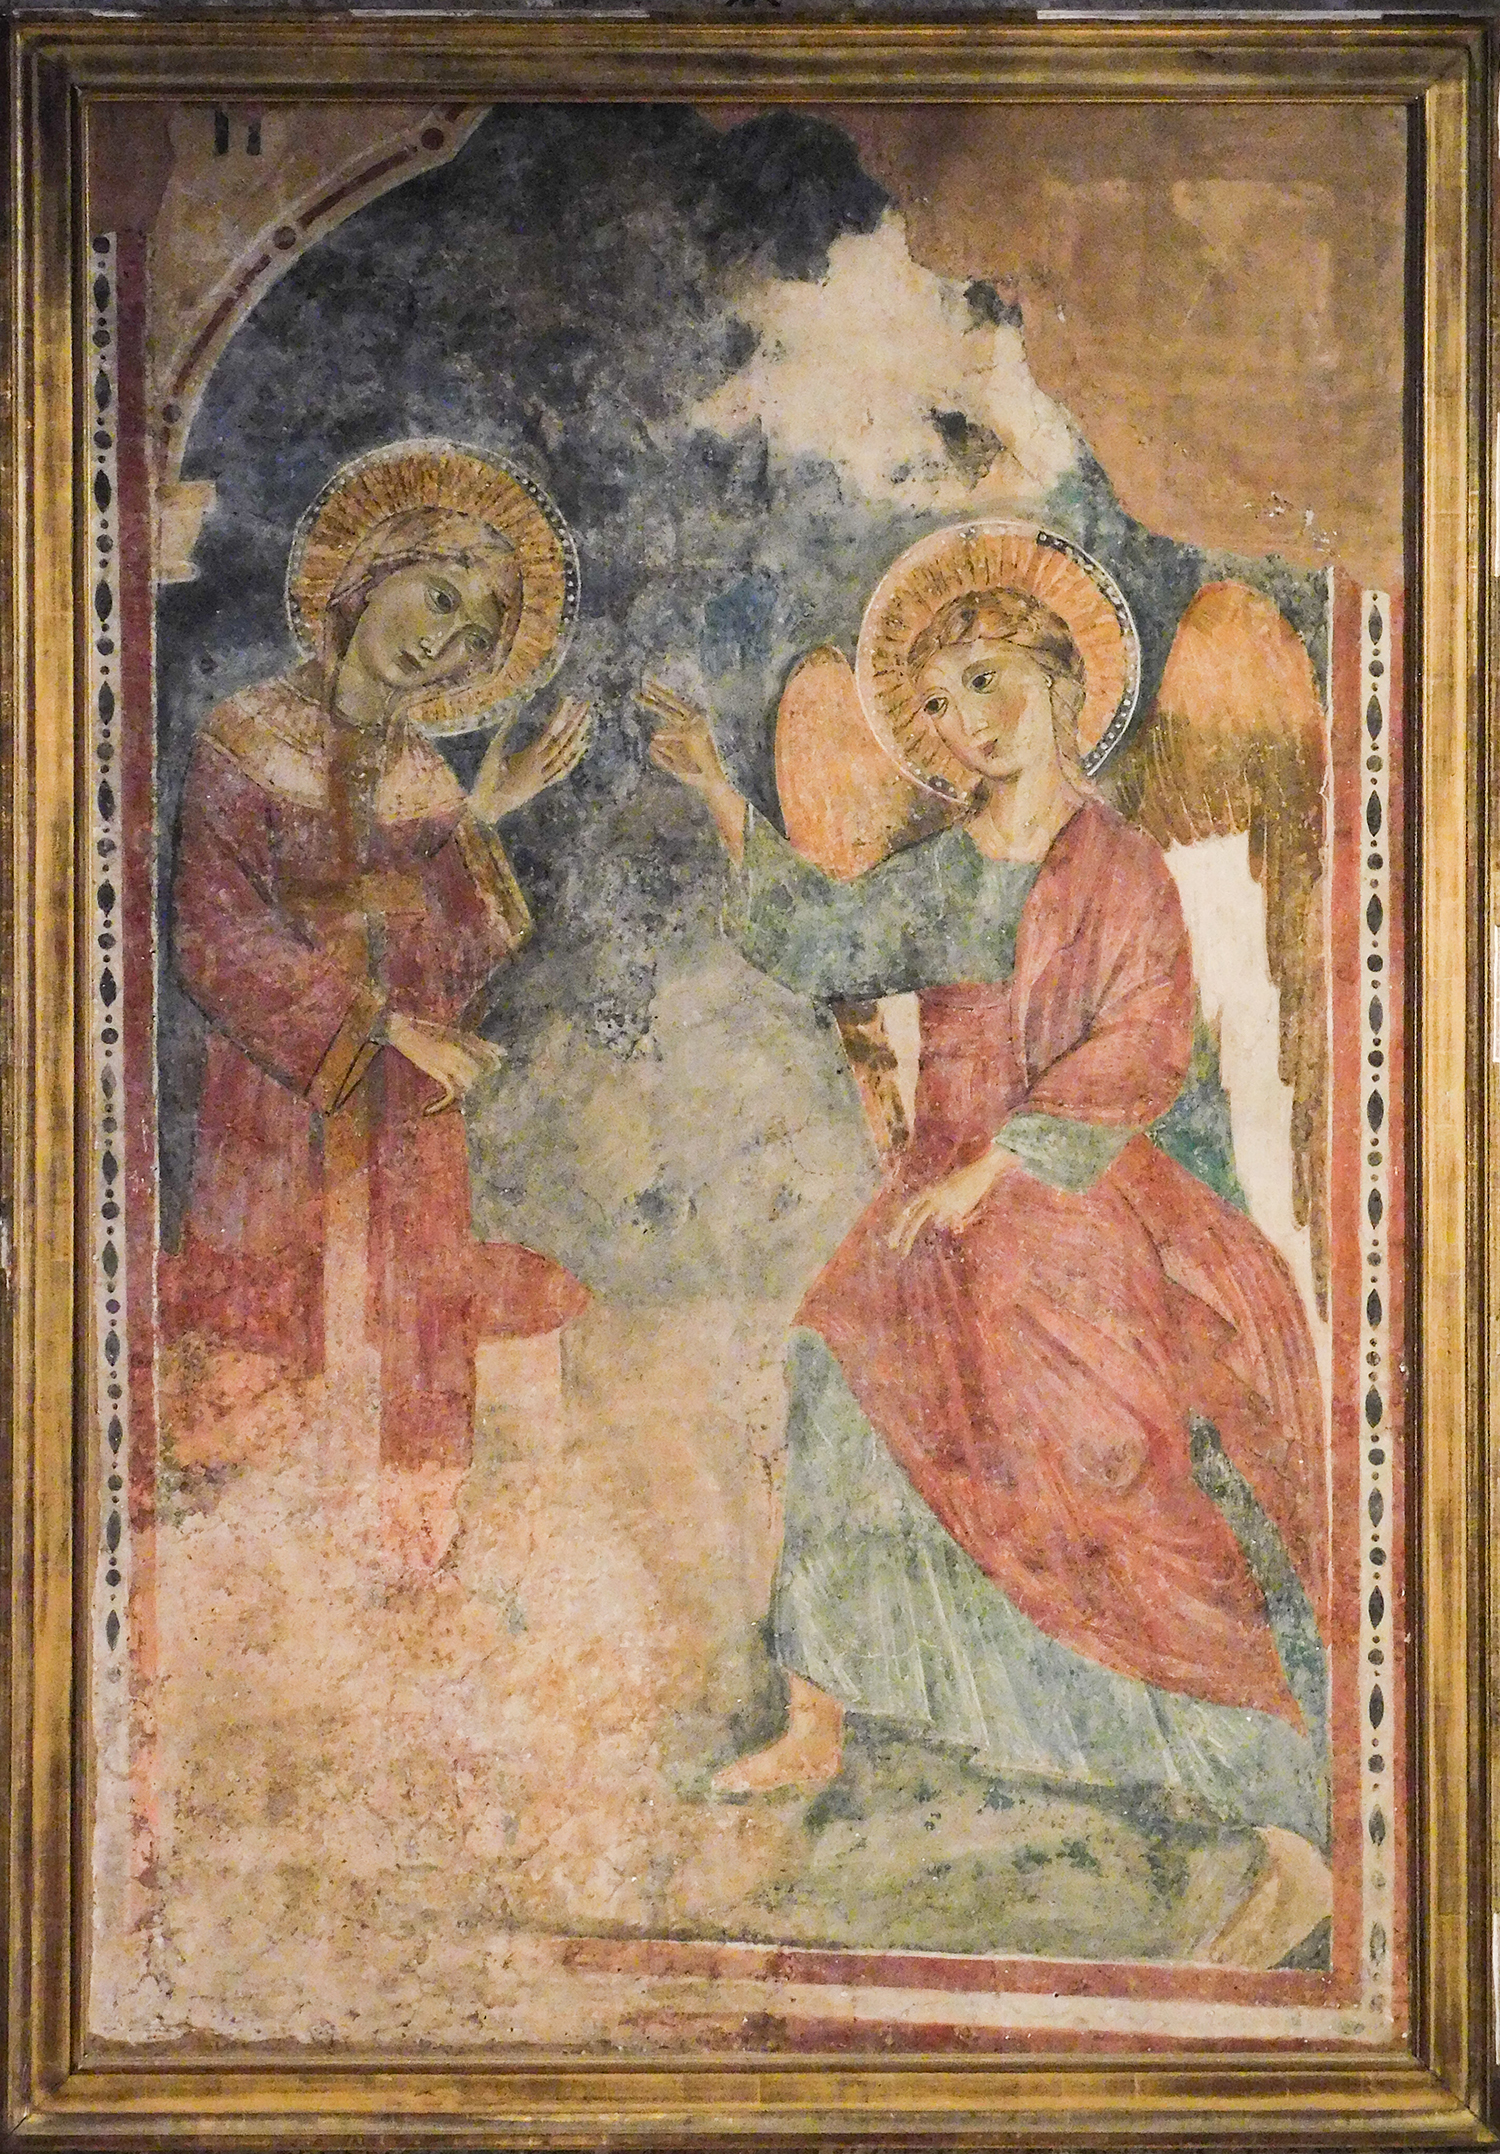 Figure 7.  The Annunciation , detached fresco by an unknown artist, c. 1300, originally from the Clarissan monastery of Santa Maria inter Angelos, near Spoleto, Italy. Now Glencairn Museum number 08.FS.07. Photograph by Jonathan Kline.